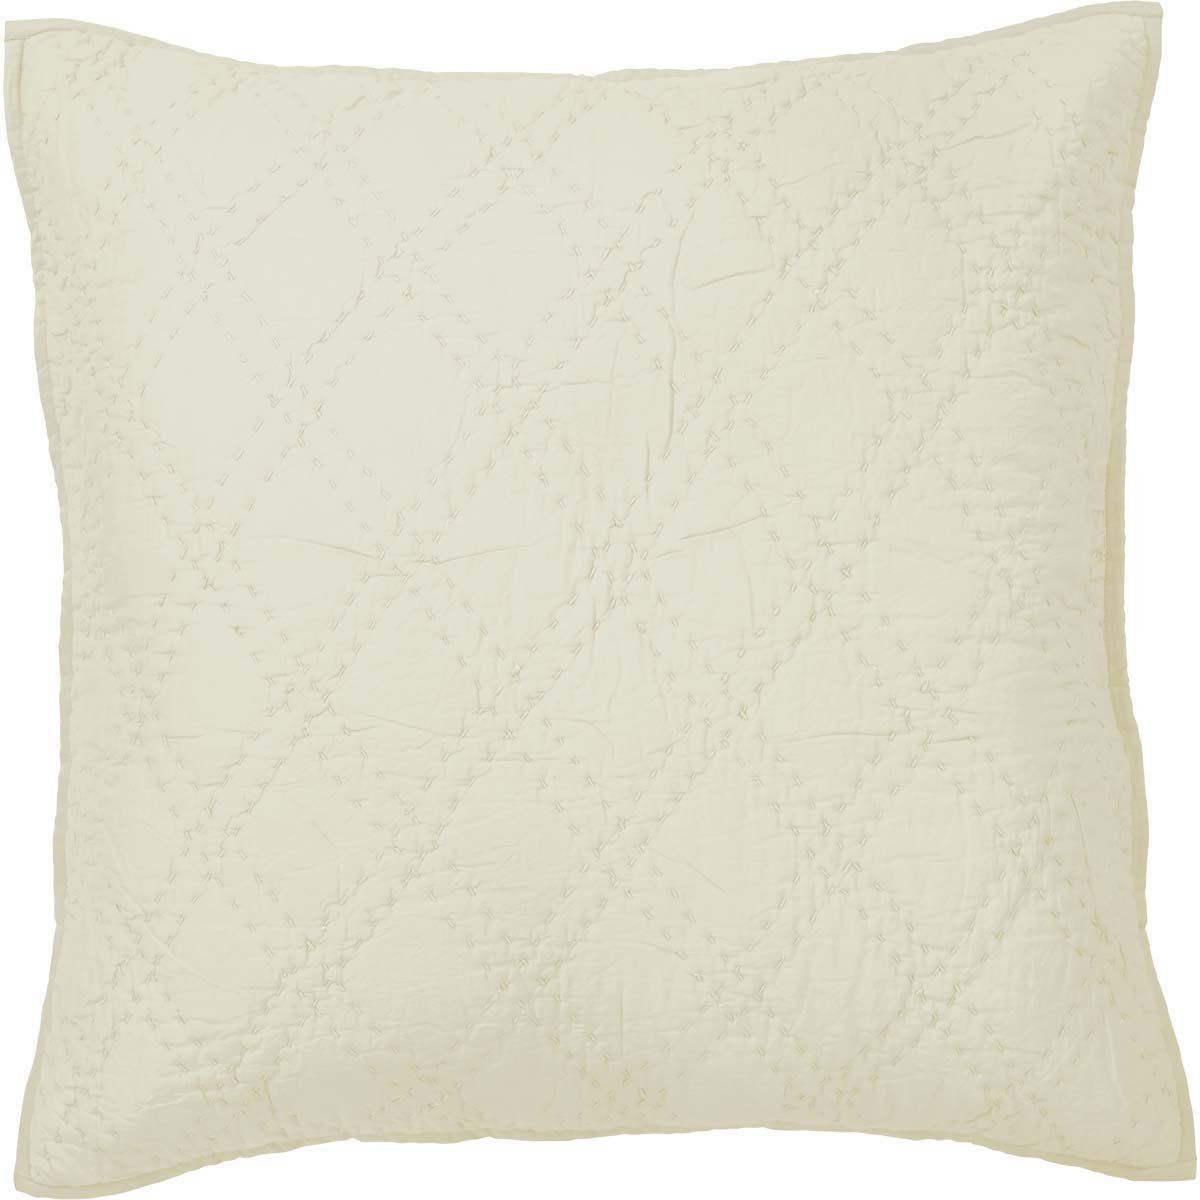 Casey parchment euro sham euro shams euro and products